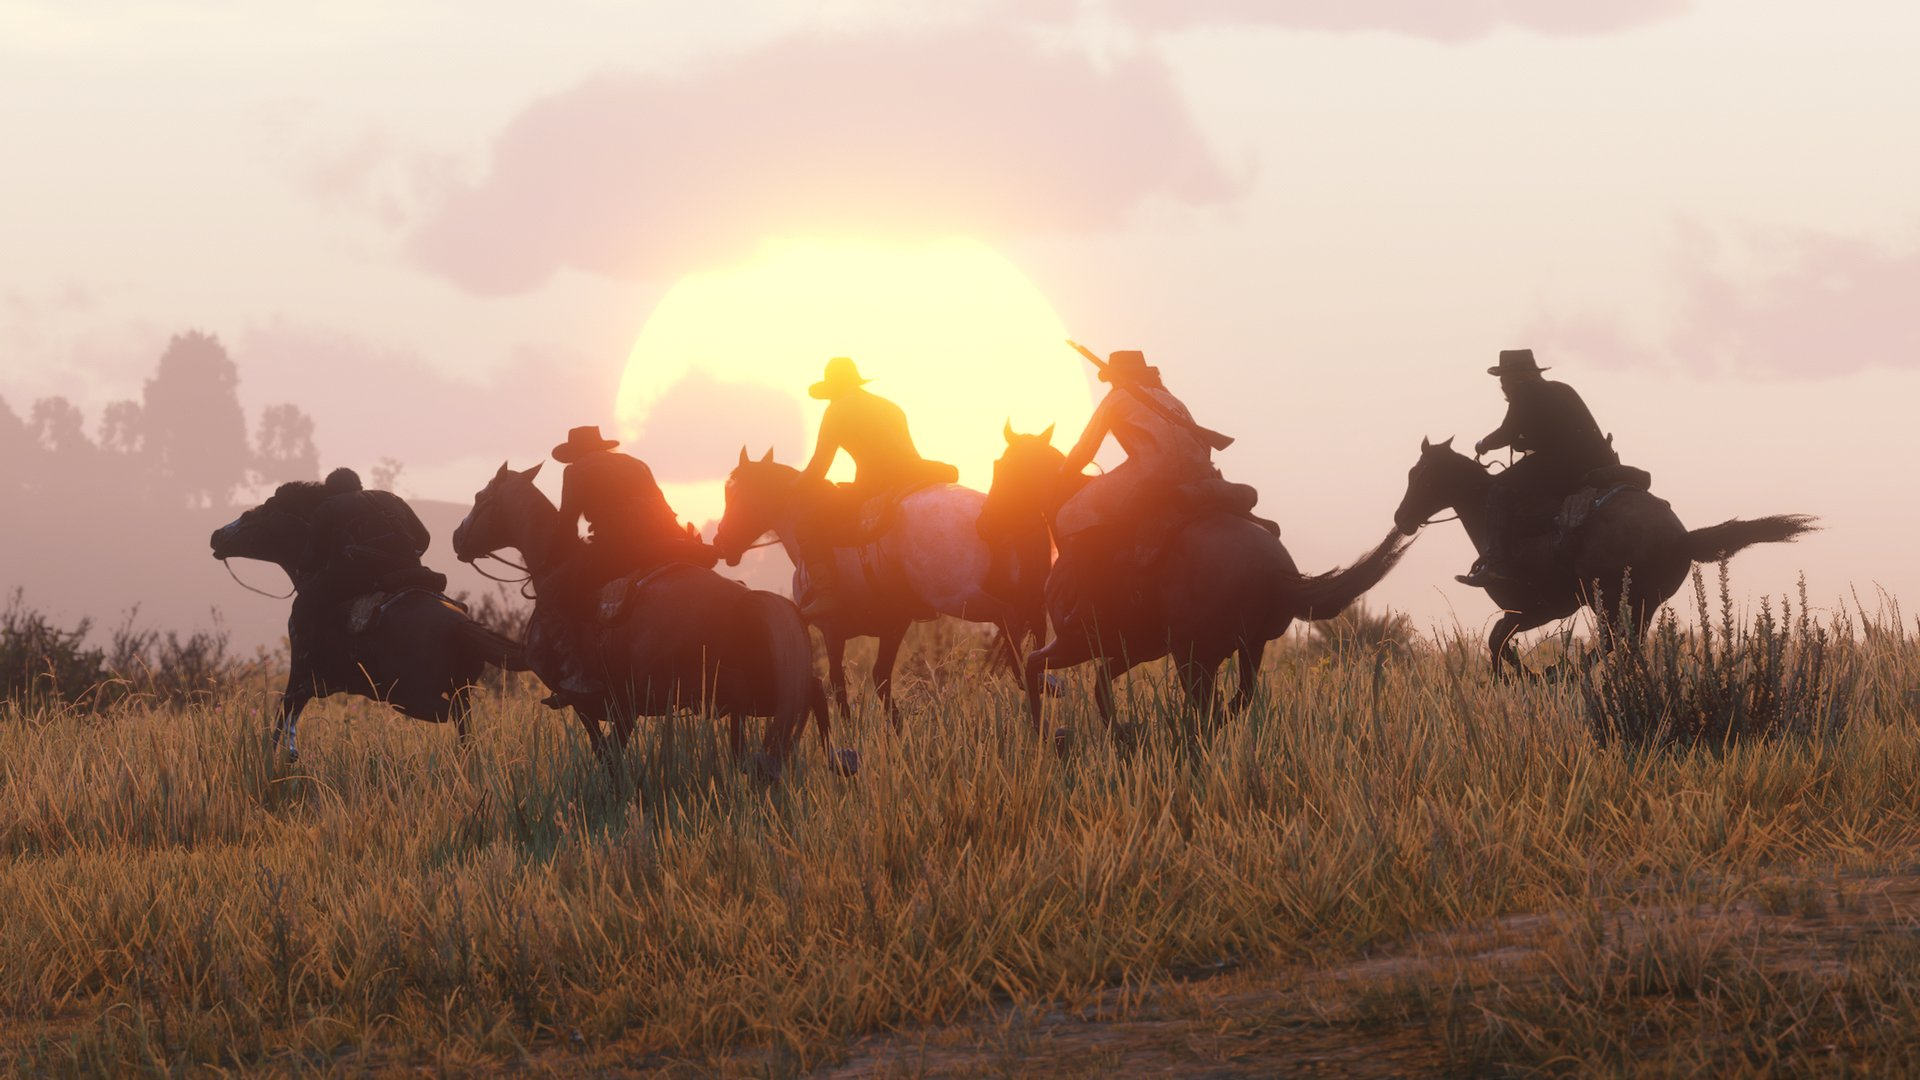 Today on Impulse, we discuss our first impressions from the Red Dead Online beta screenshot